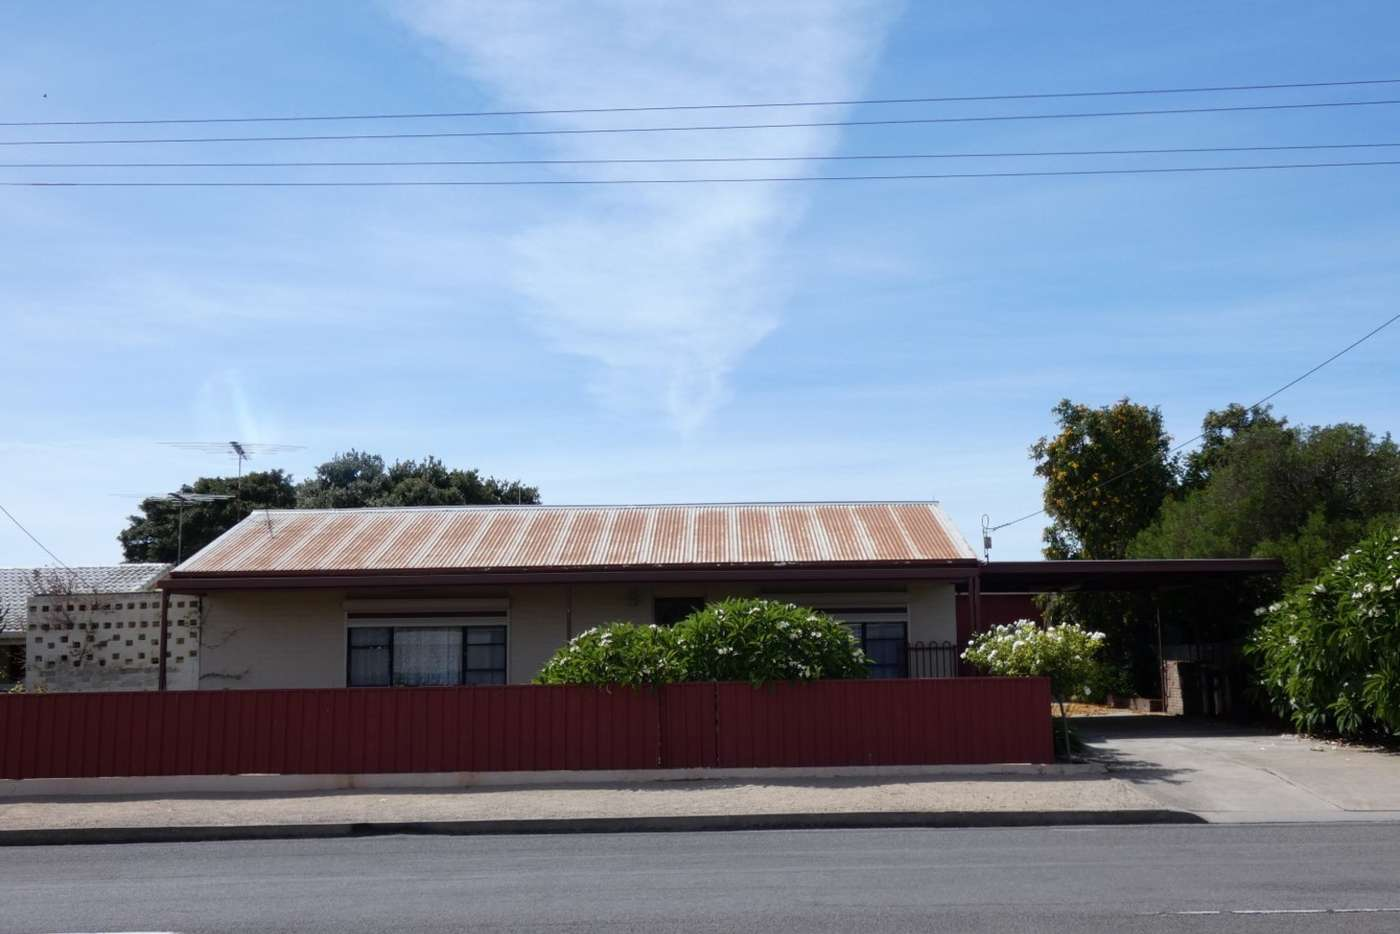 Main view of Homely house listing, 19 Blanche Street, Edithburgh SA 5583